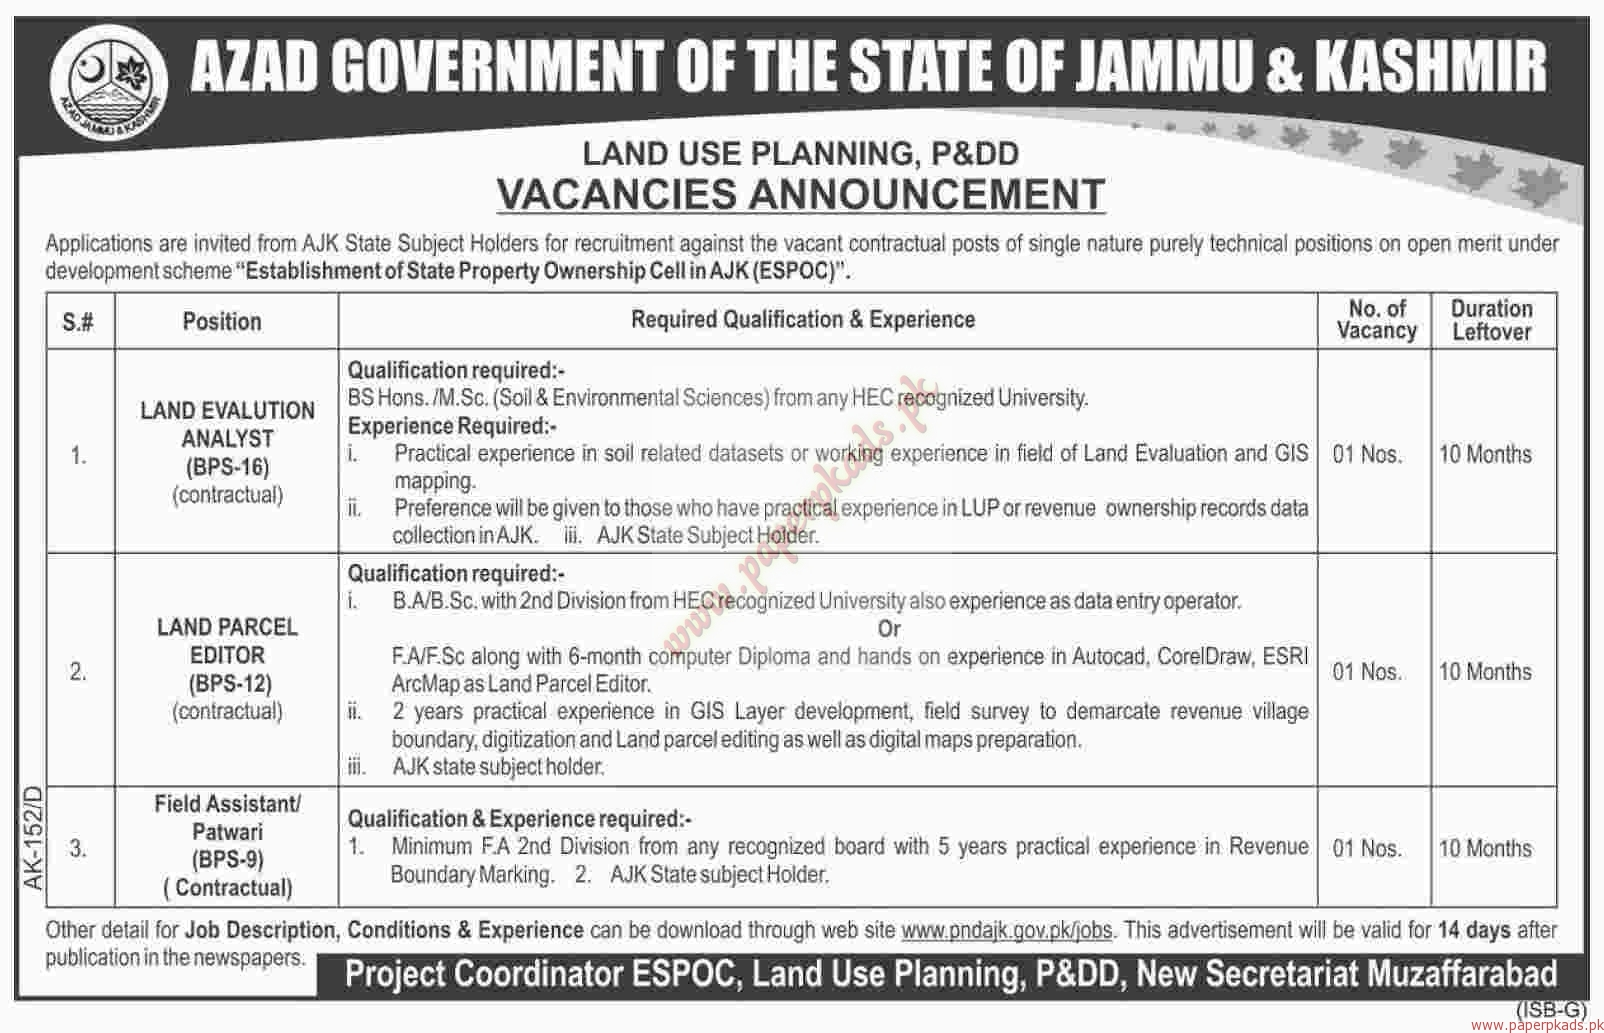 Azad Government of the State of Jammu & Kashmir Jobs - Dawn Jobs ads 31 December 2016